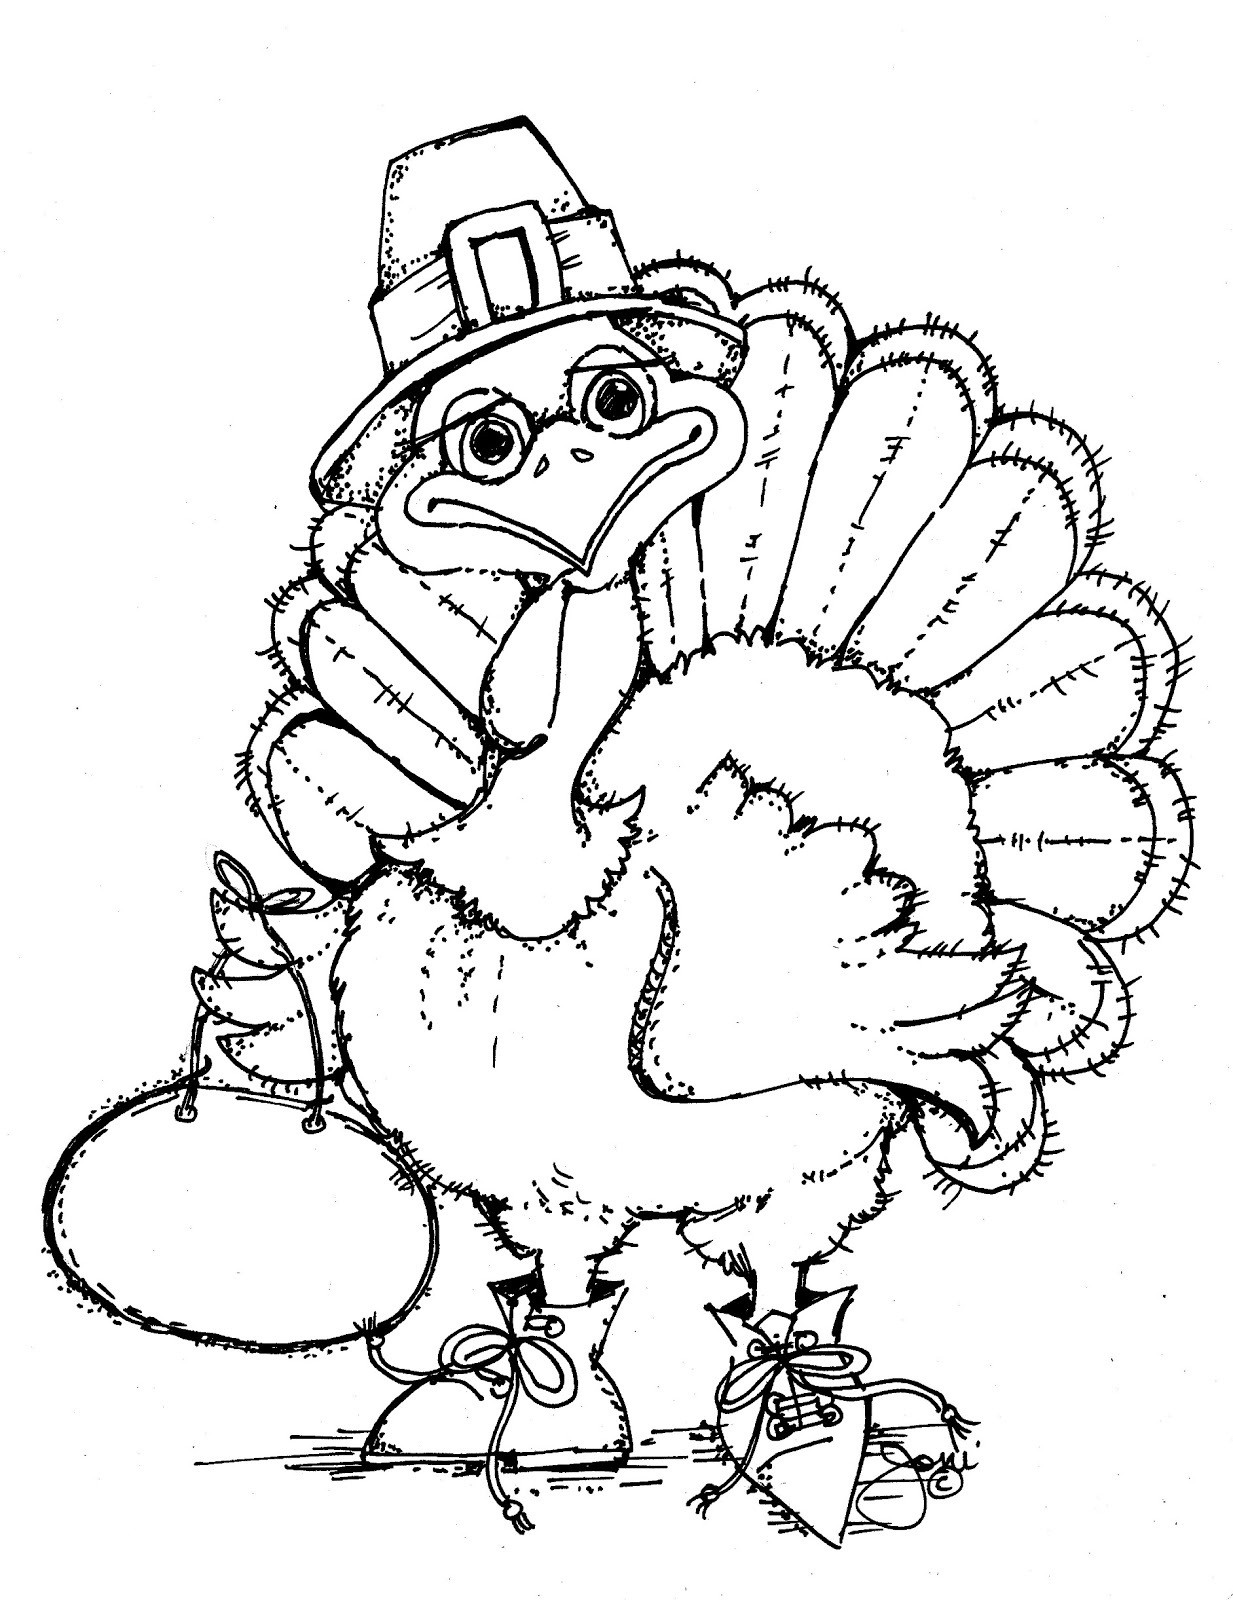 Thanksgiving Turkey Coloring Pages Printables  Free Printable Turkey Coloring Pages For Kids